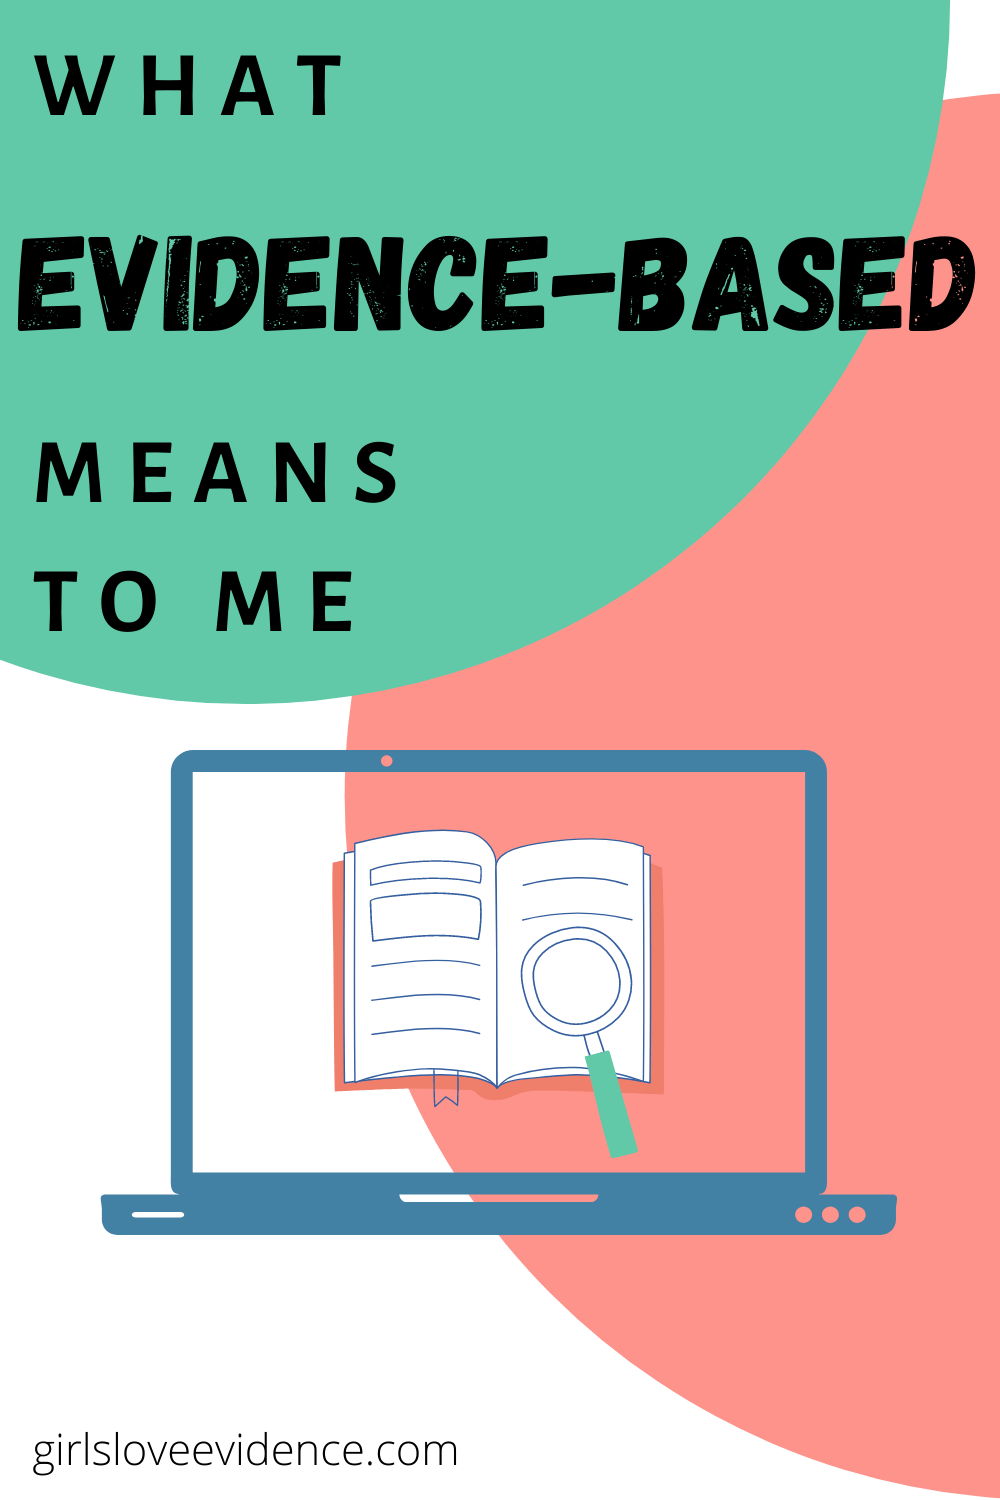 what evidence-based means to me